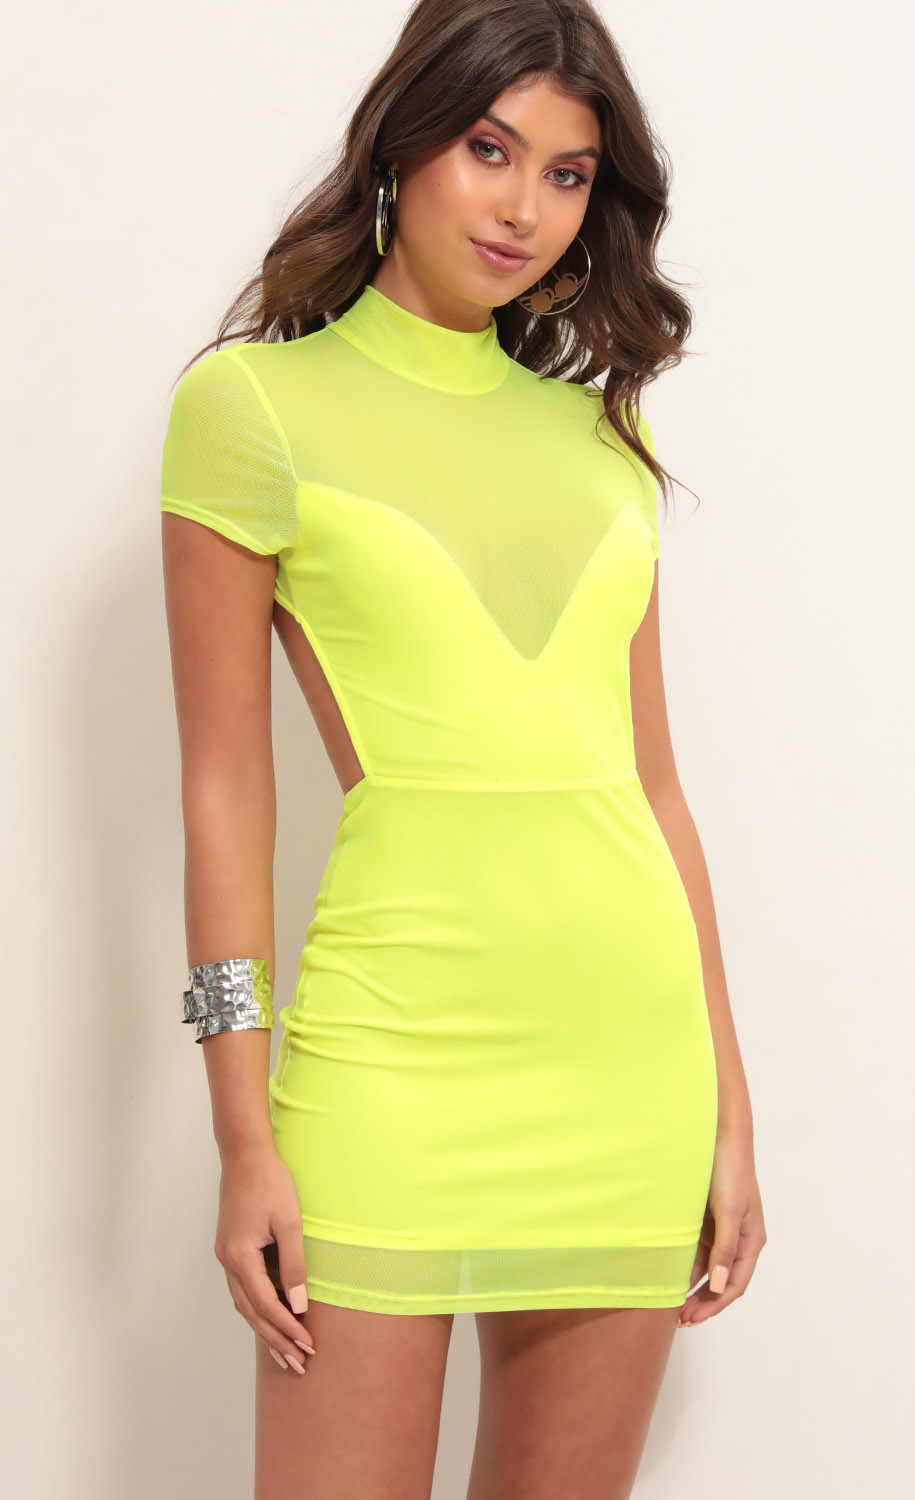 Callie Open Back Mesh Dress in Neon Yellow